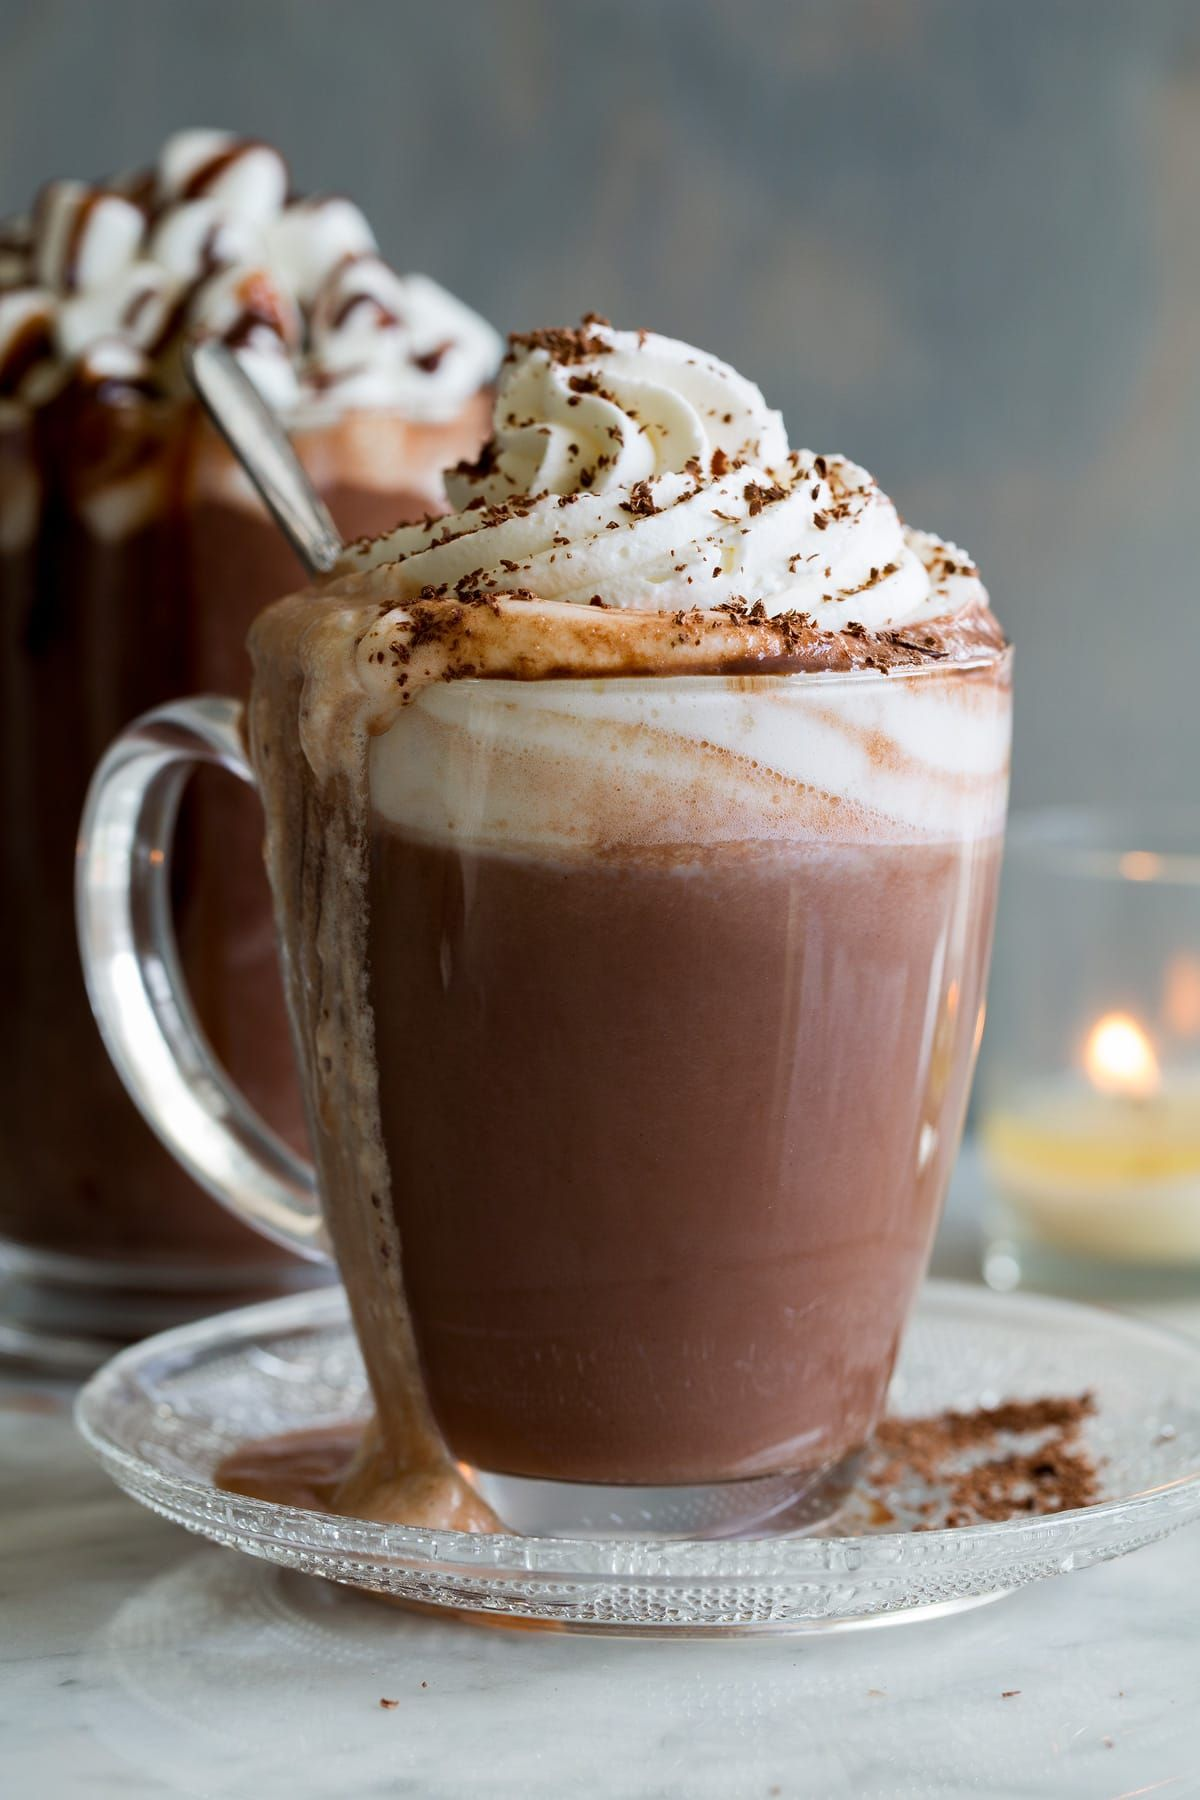 Hot Chocolate shown here in a glass mug with whipped cream